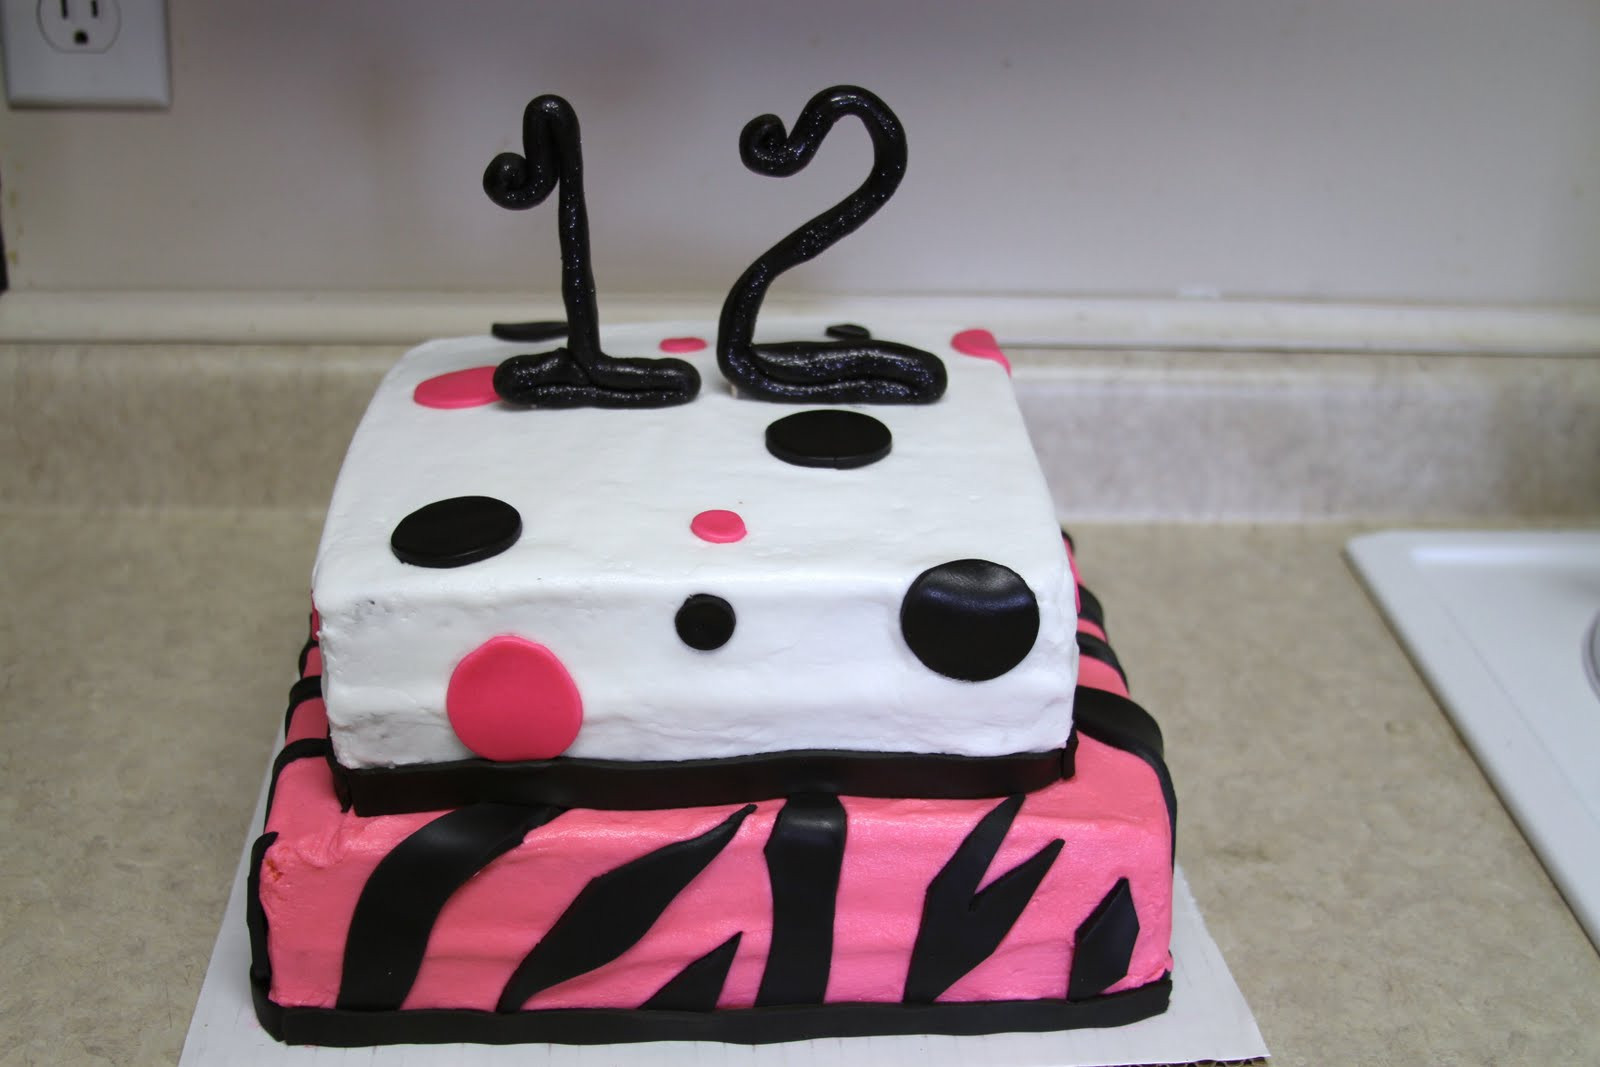 Best ideas about Birthday Cake For 12 Years Old Girl . Save or Pin Michele Robinson Cakes Zebra Poka Dot 12th Birthday Cake Now.